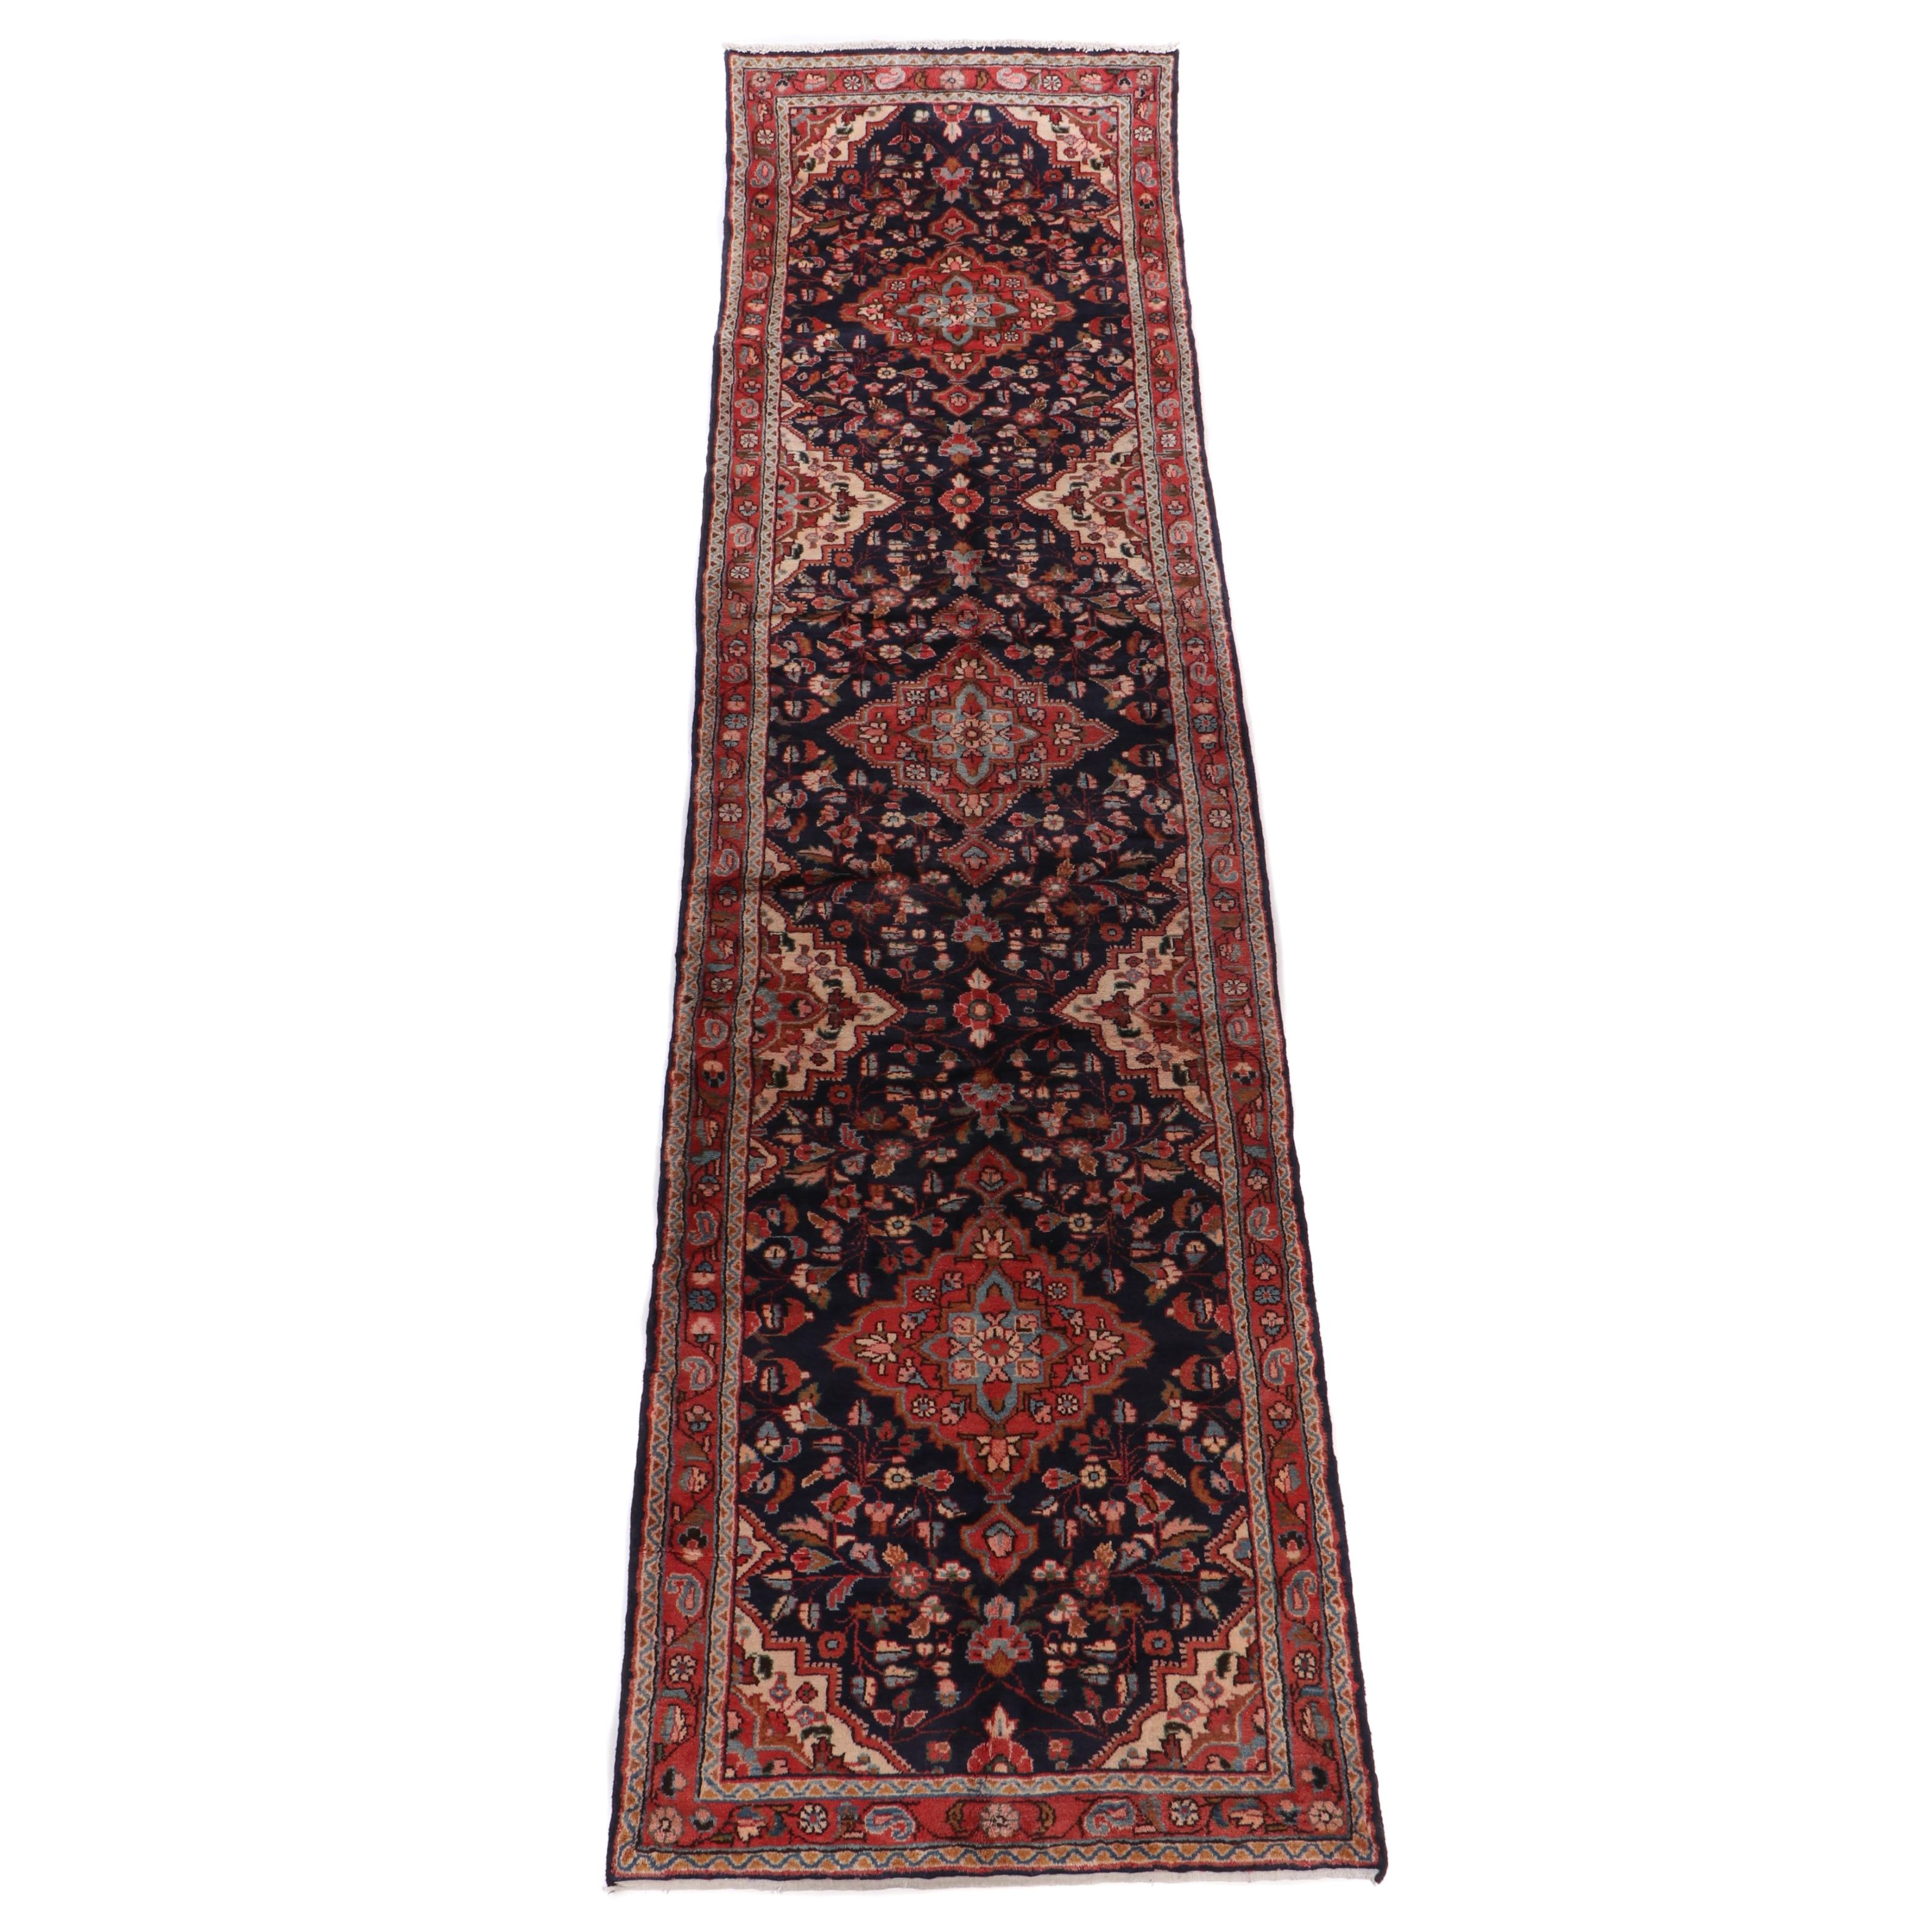 Hand-Knotted Wool Northwest Persian Carpet Runner